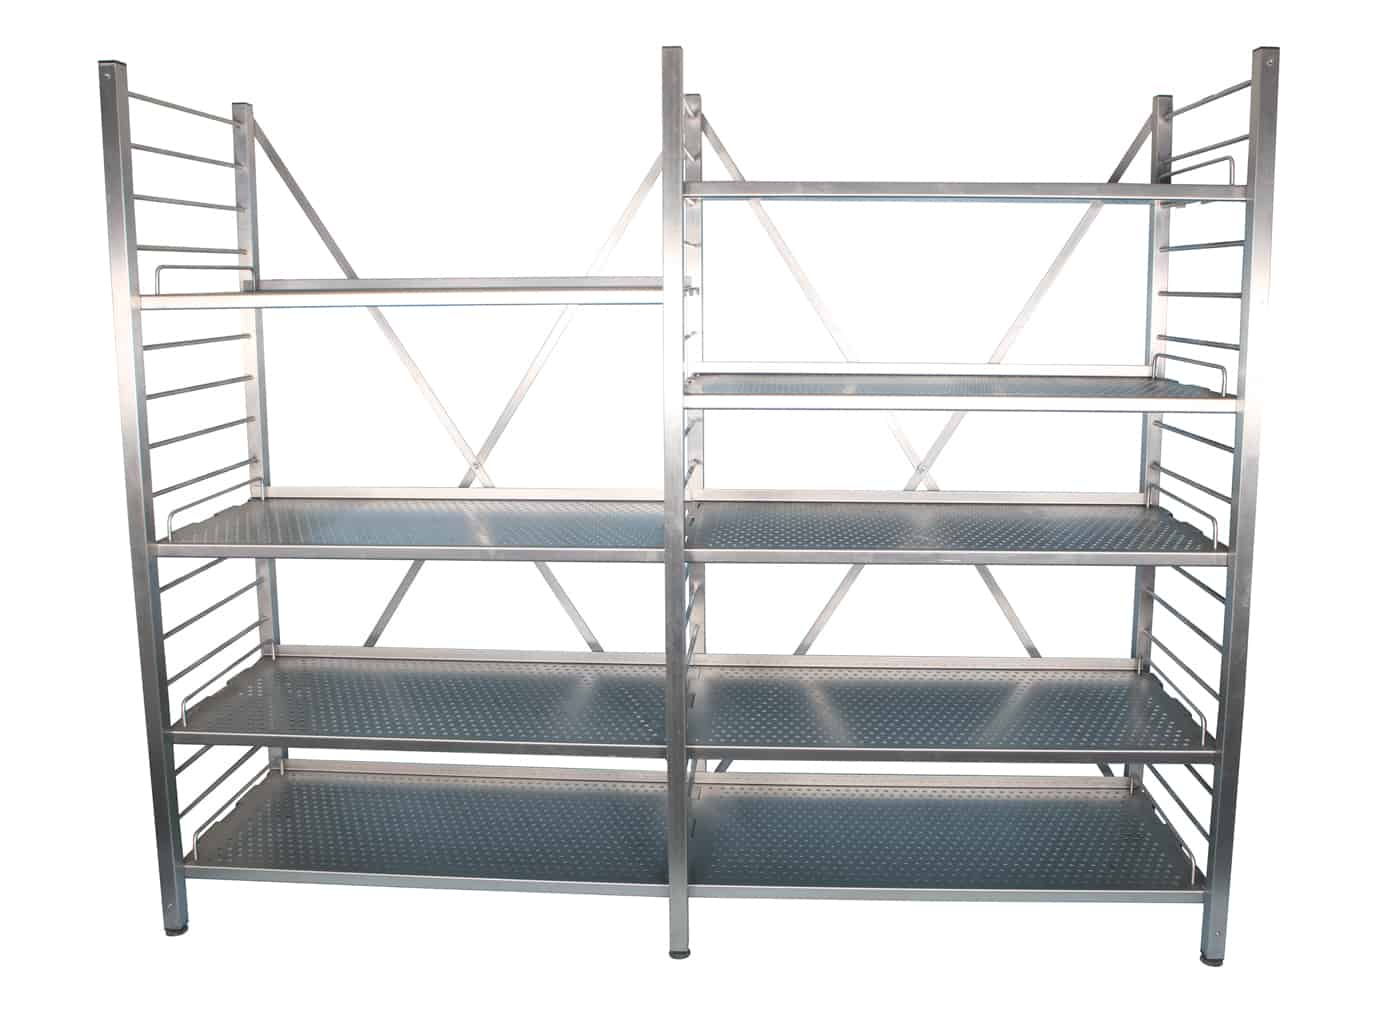 Stainless Steel Adjustable Racking